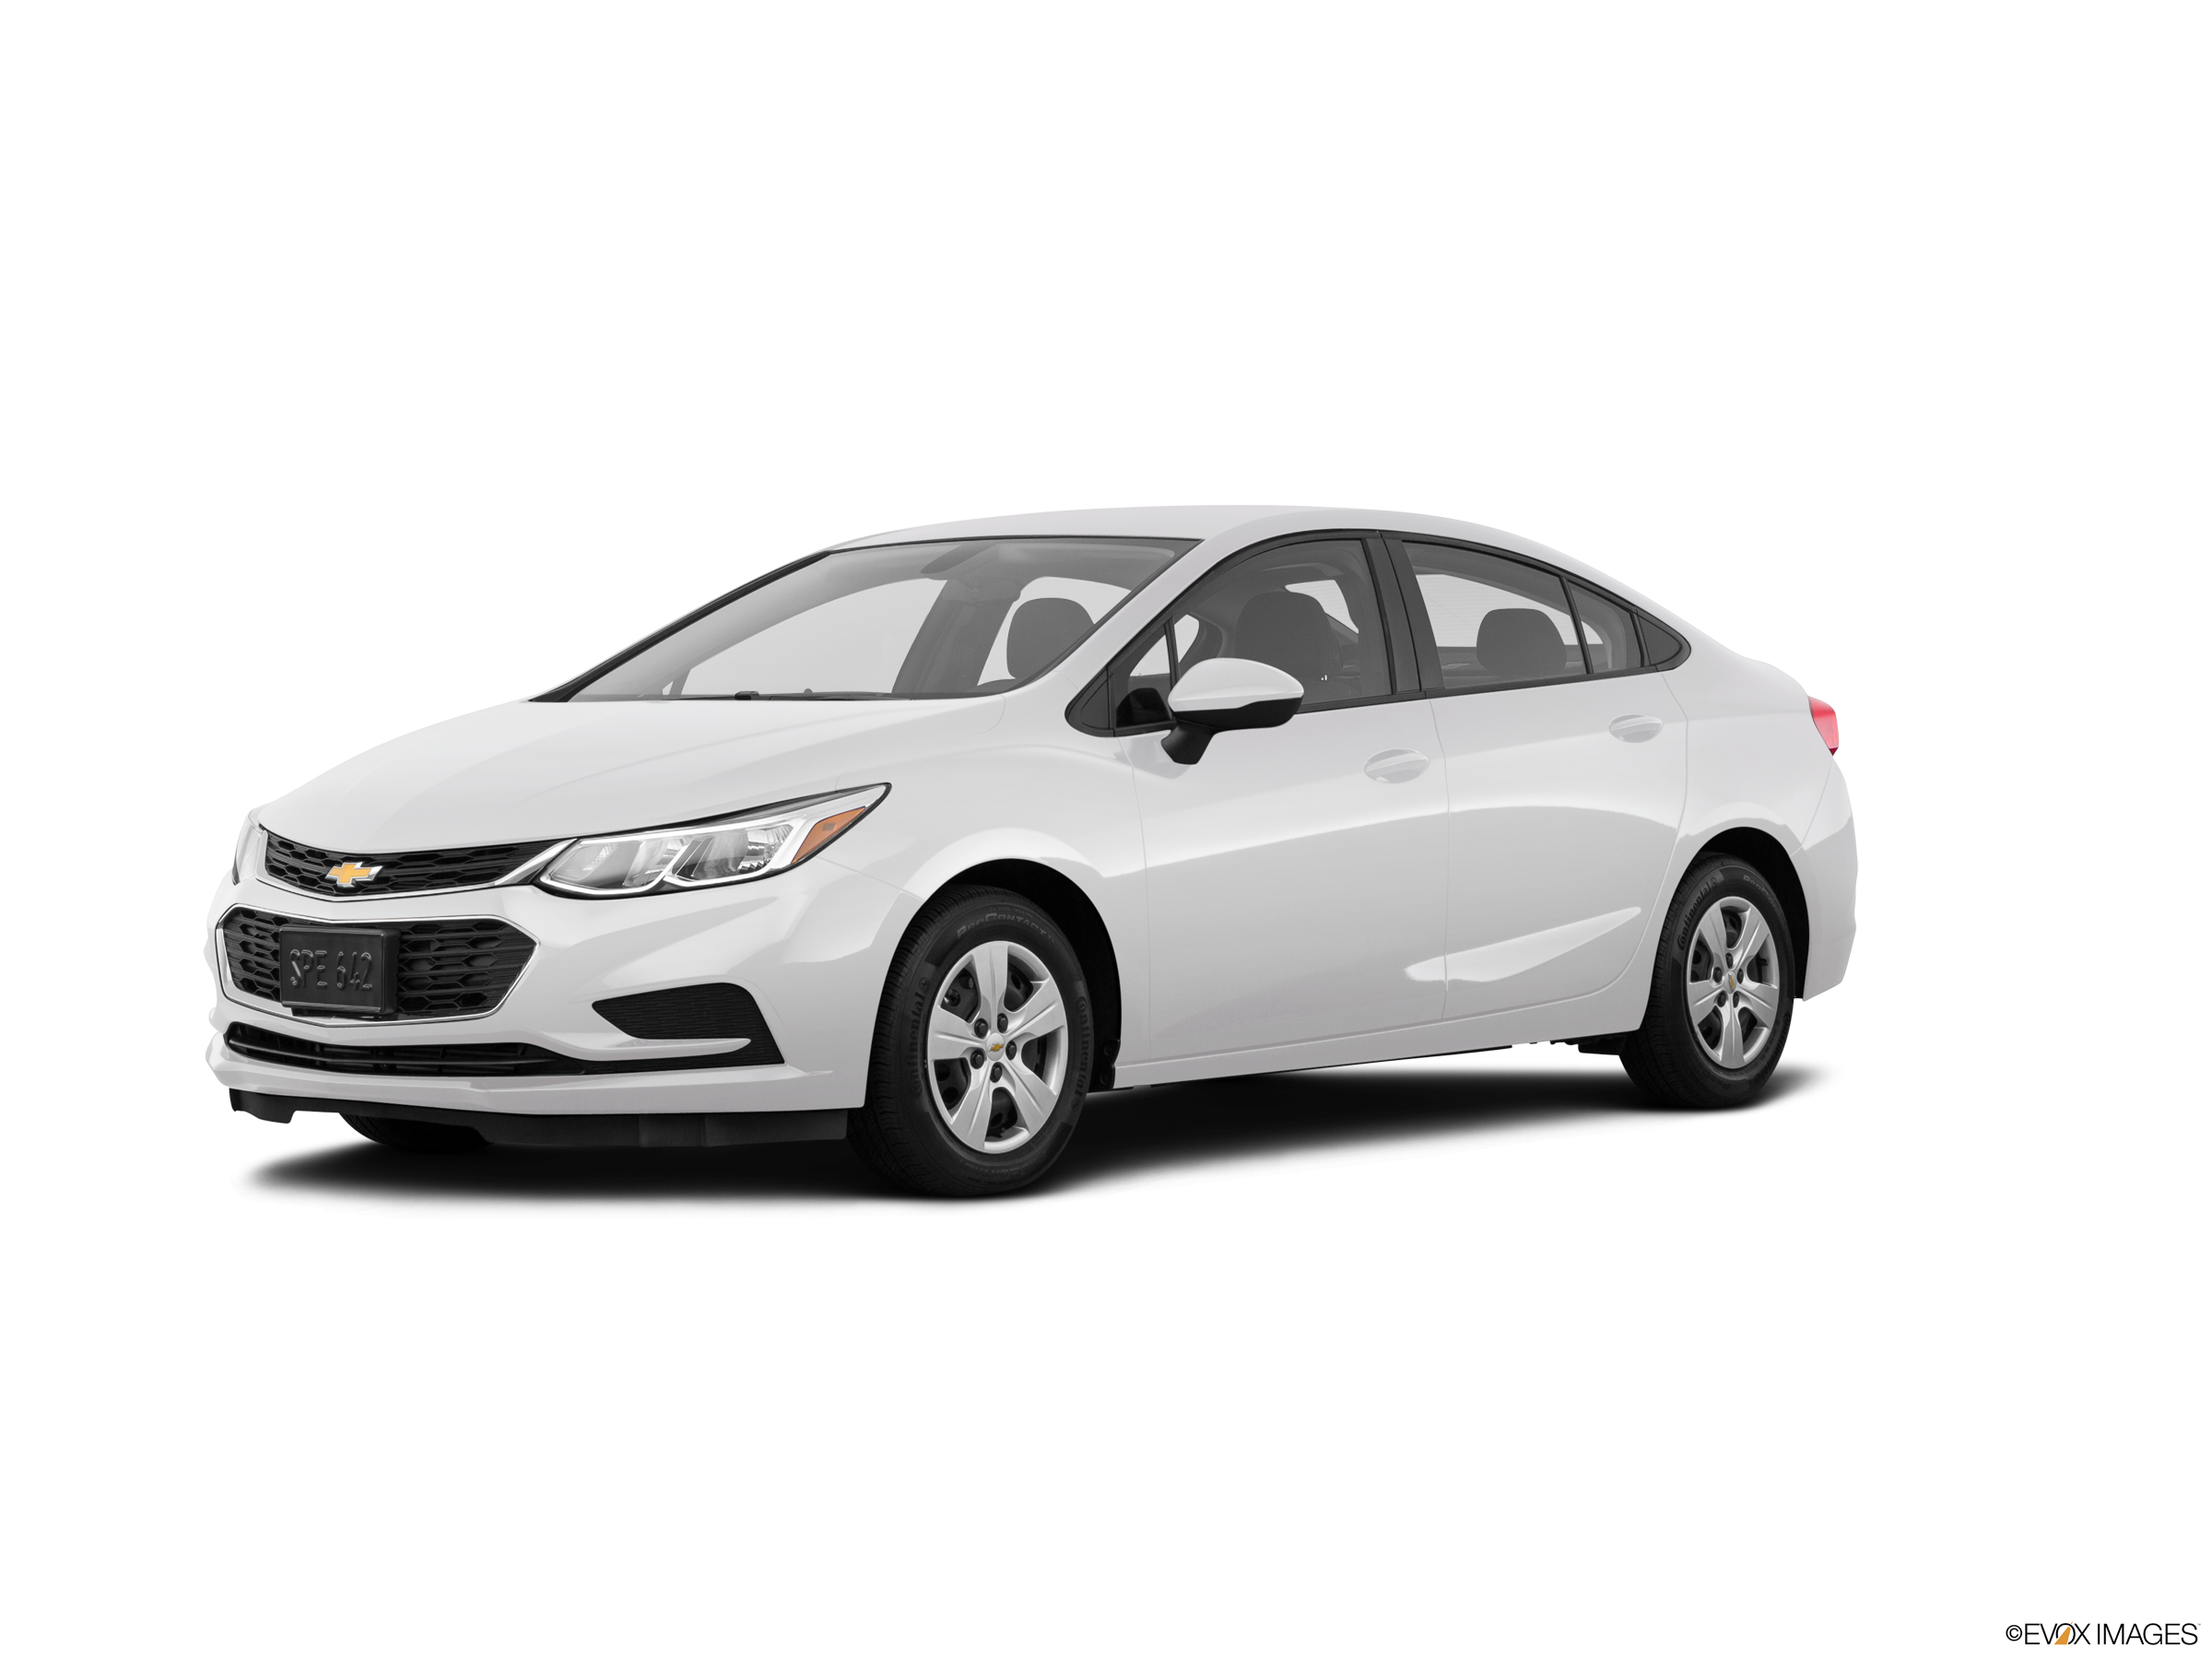 2019 chevrolet cruze prices reviews pictures kelley blue book 2019 chevrolet cruze prices reviews